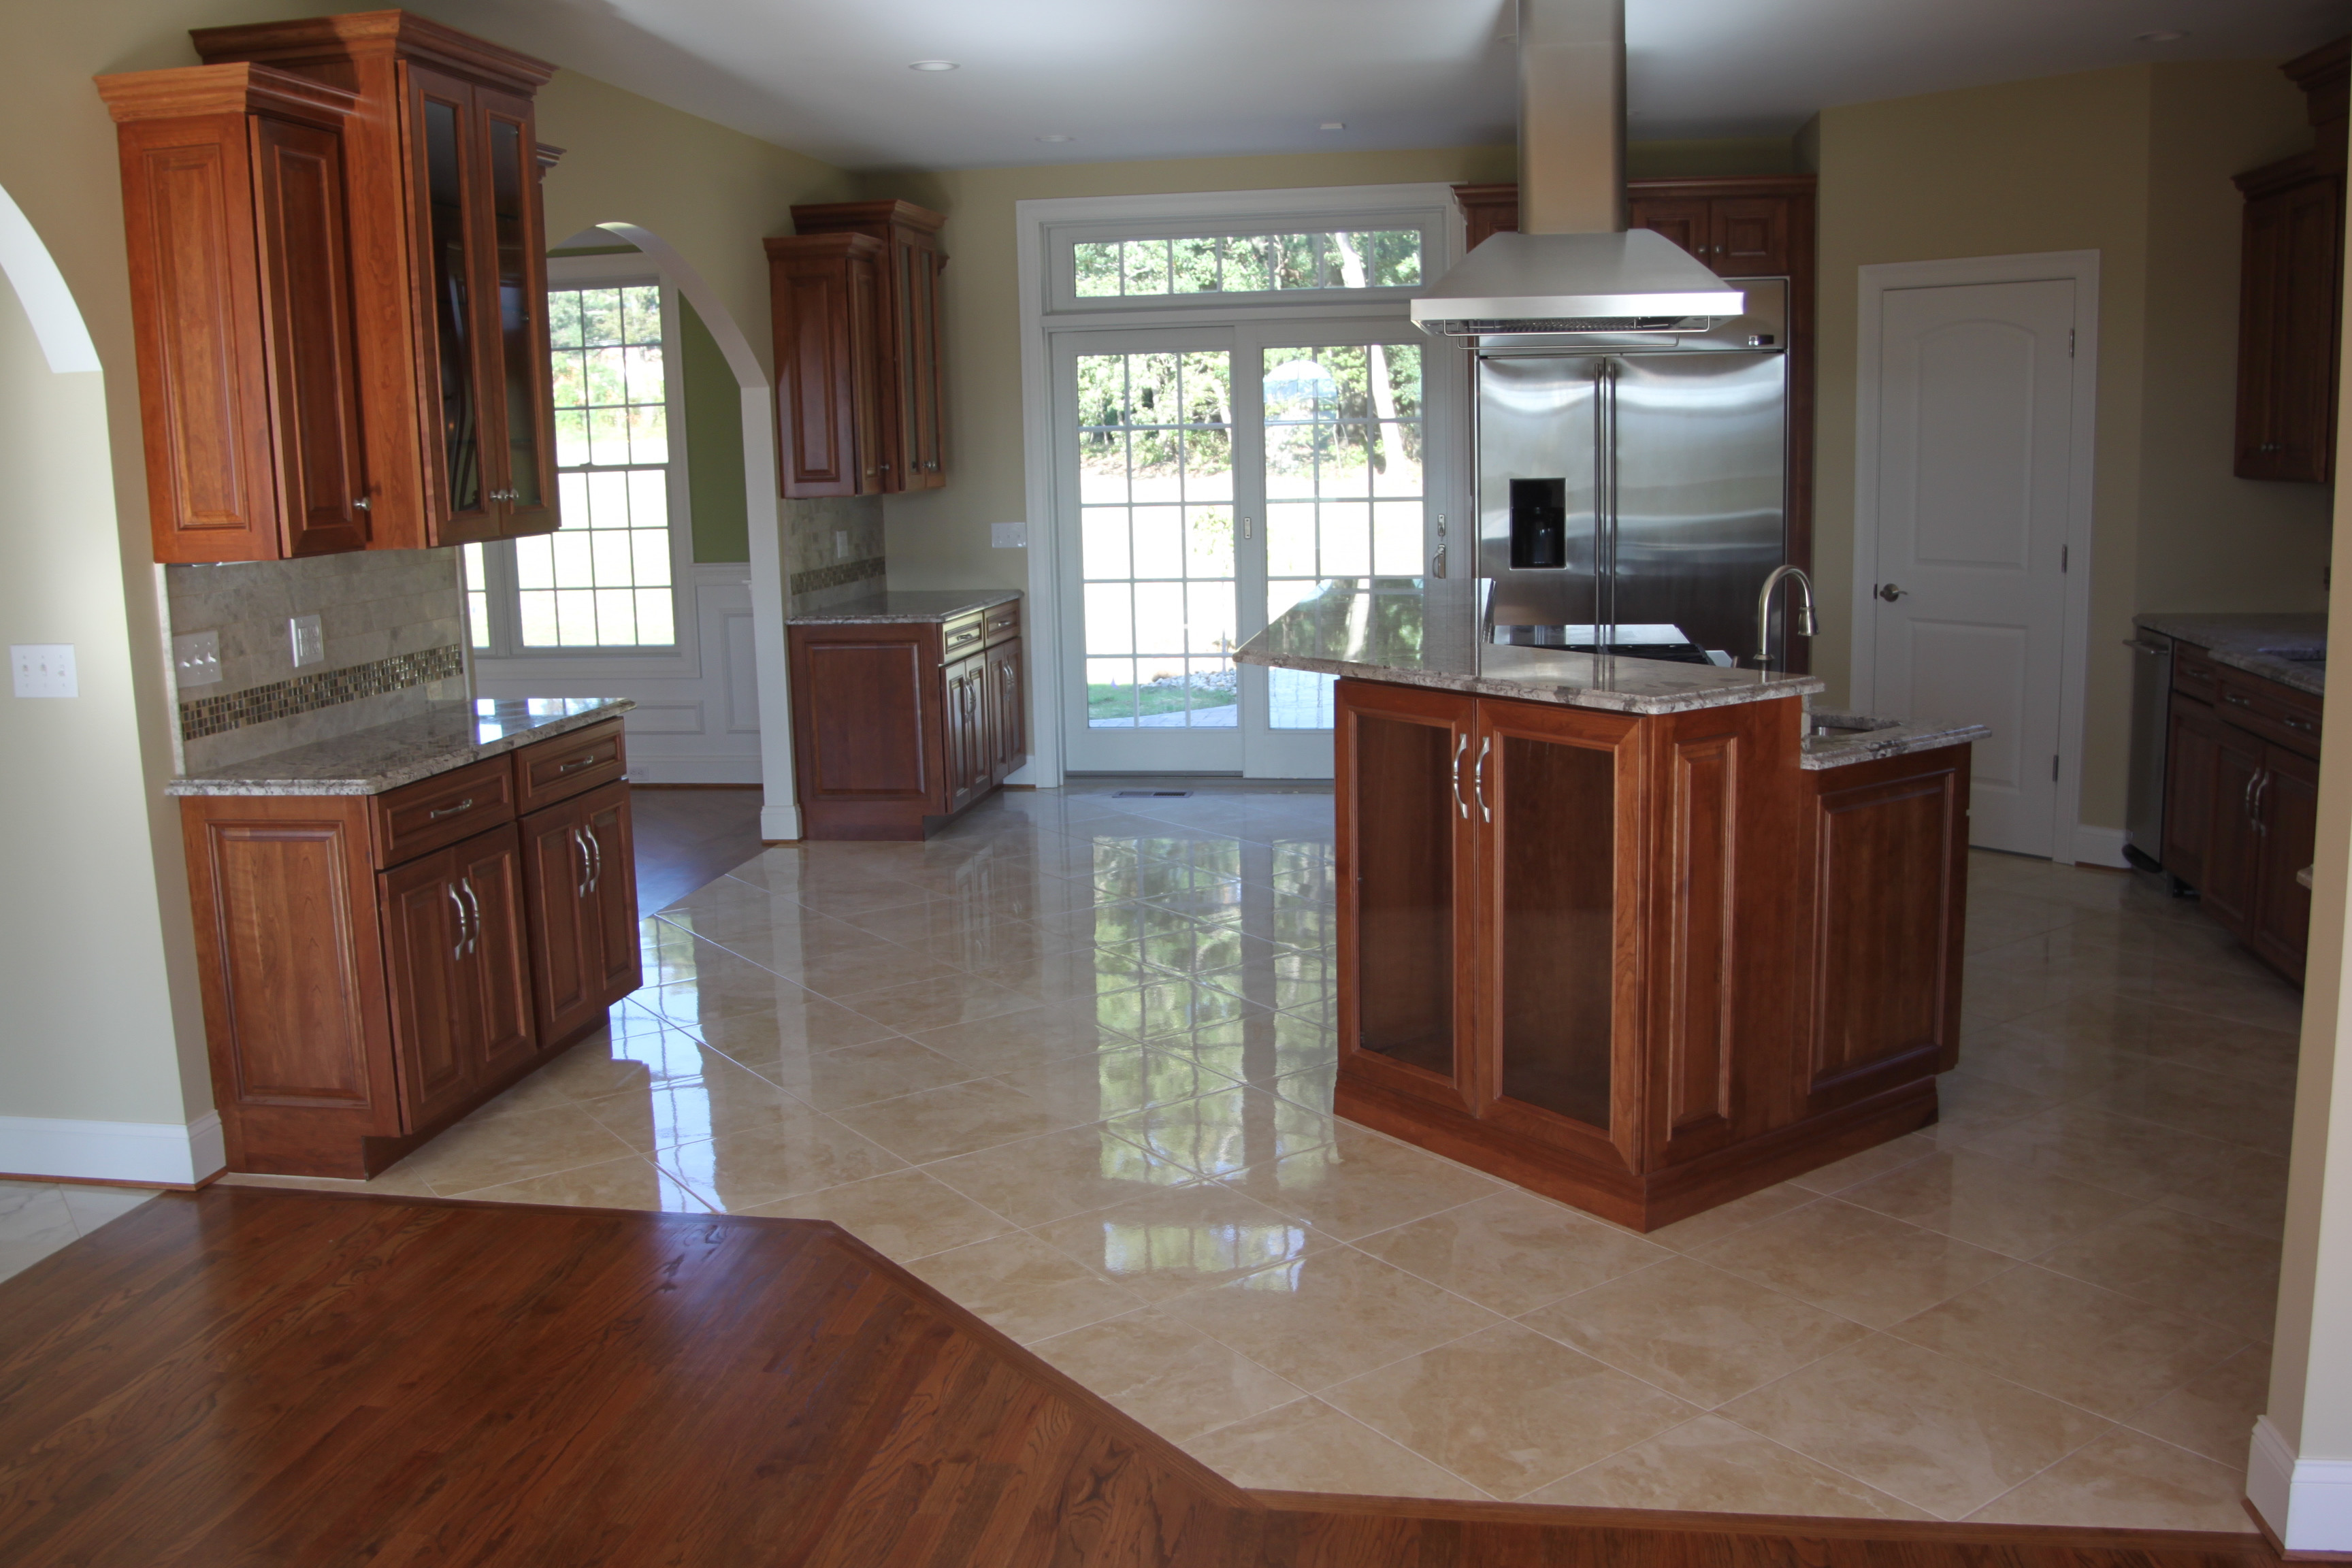 hardwood floors vs porcelain tile of should your flooring match your kitchen cabinets or countertops with floor wall tile